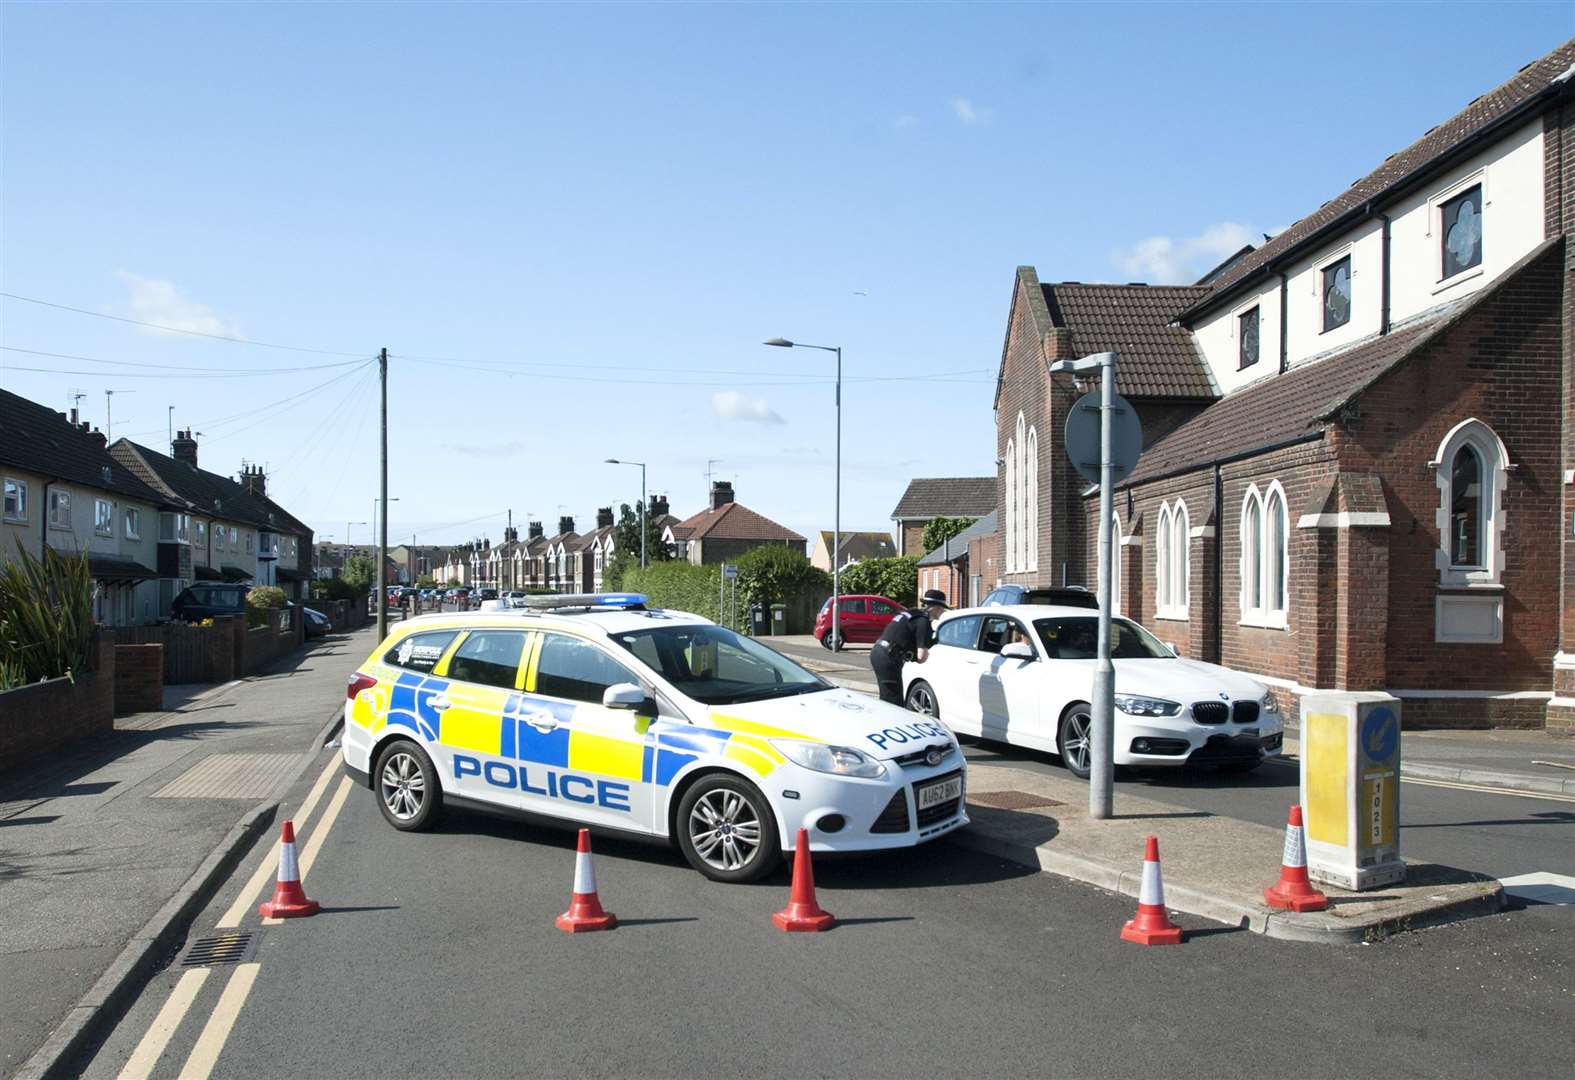 Death of teenager: Man, 31, charged with GBH